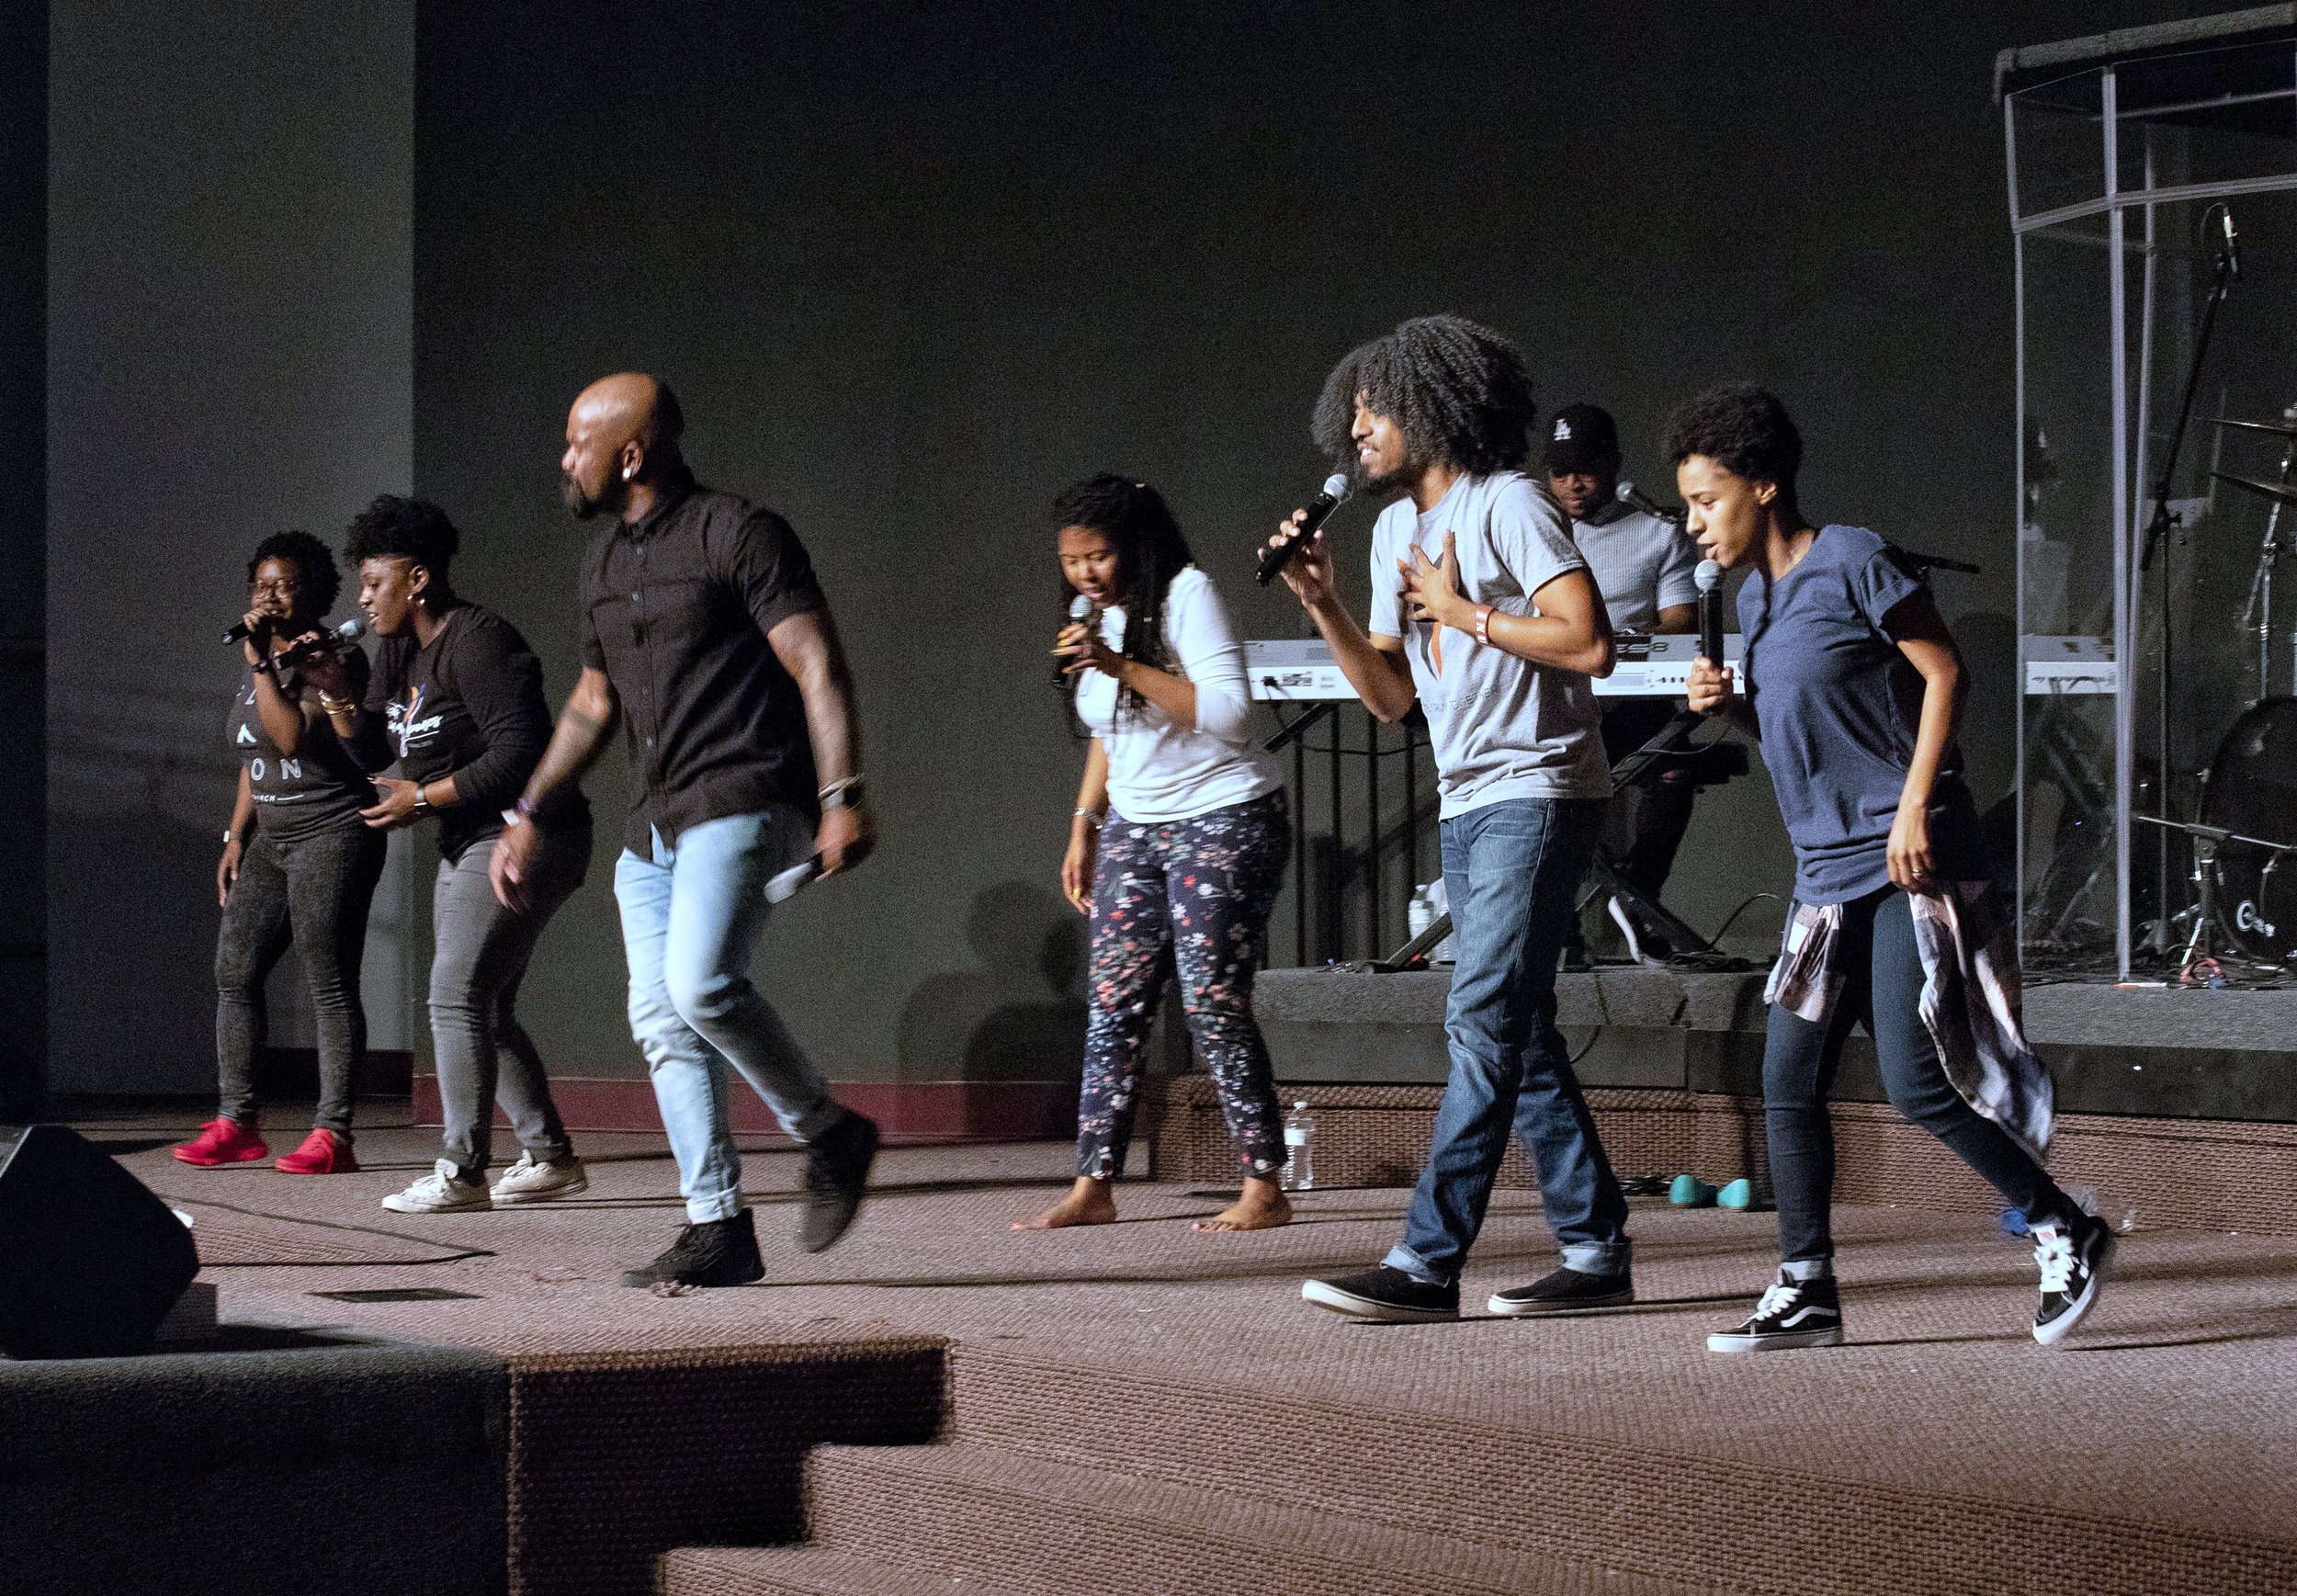 Zóé | Praise & Worship - Our Praise & Worship at TLC is a family of singers and musicians dedicated to serving our community with excellence and passion. We encourage the innovative presentation of